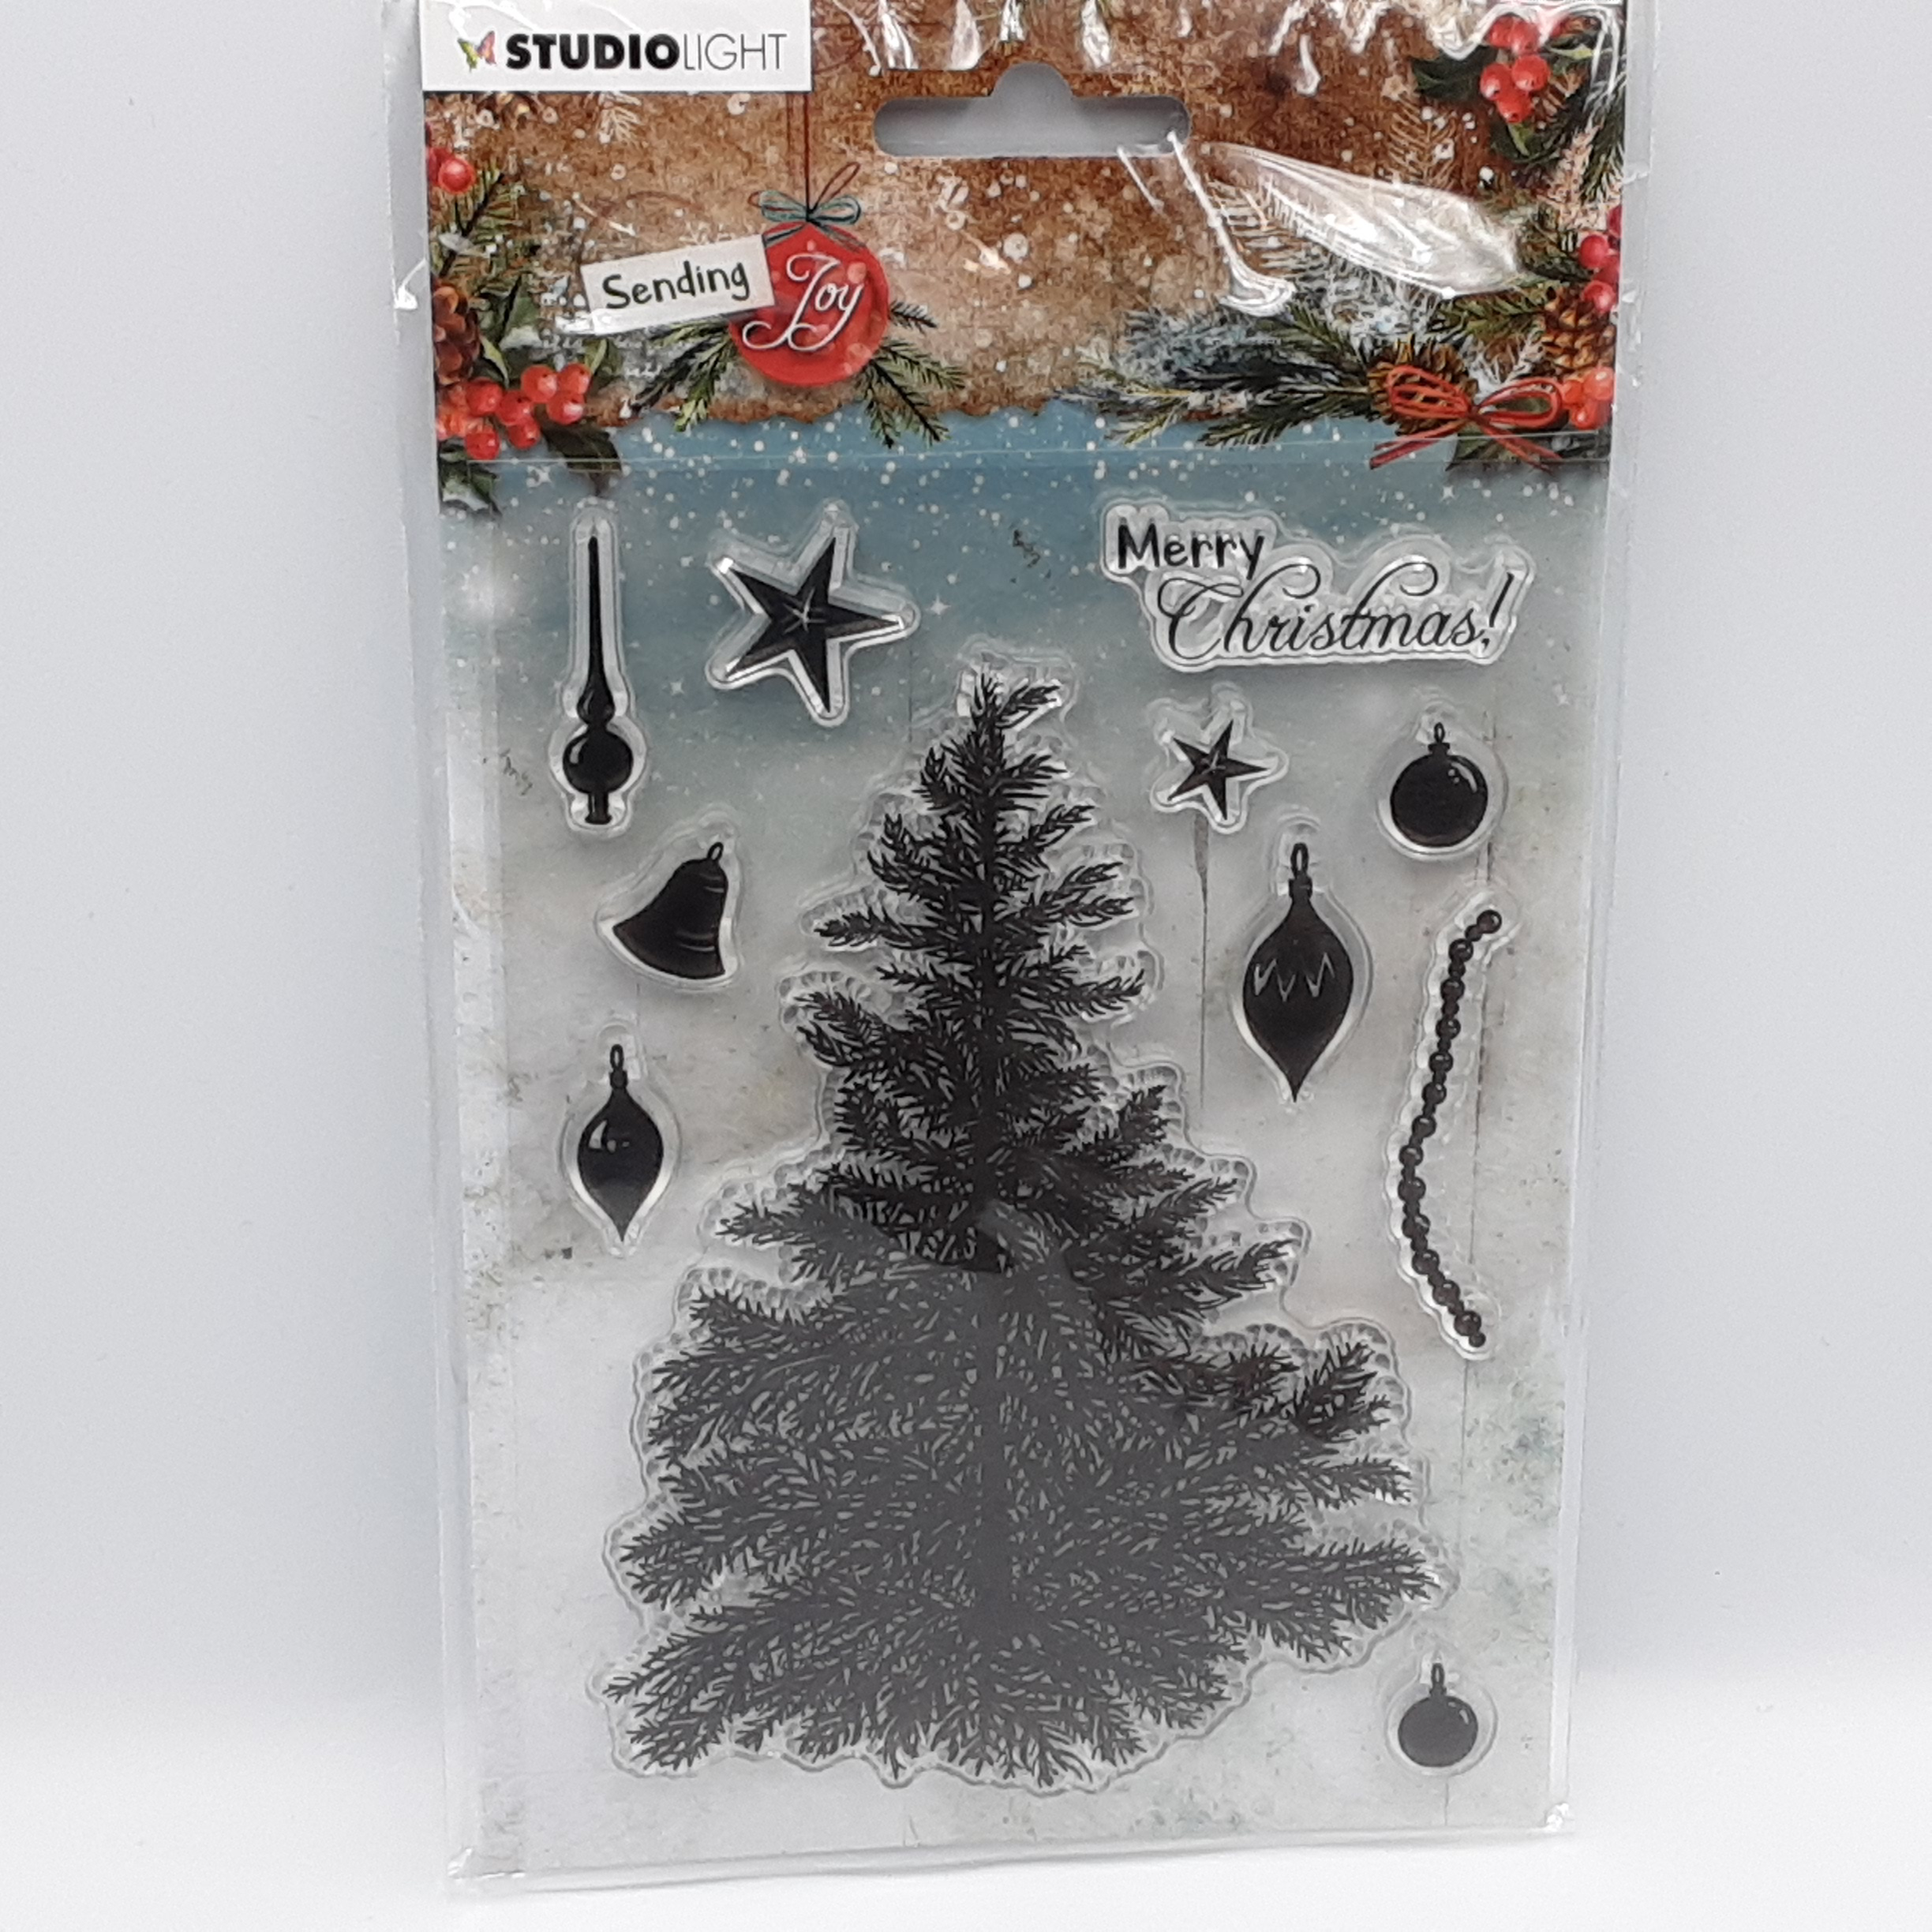 Sending joy building a christmas tree clear stamp